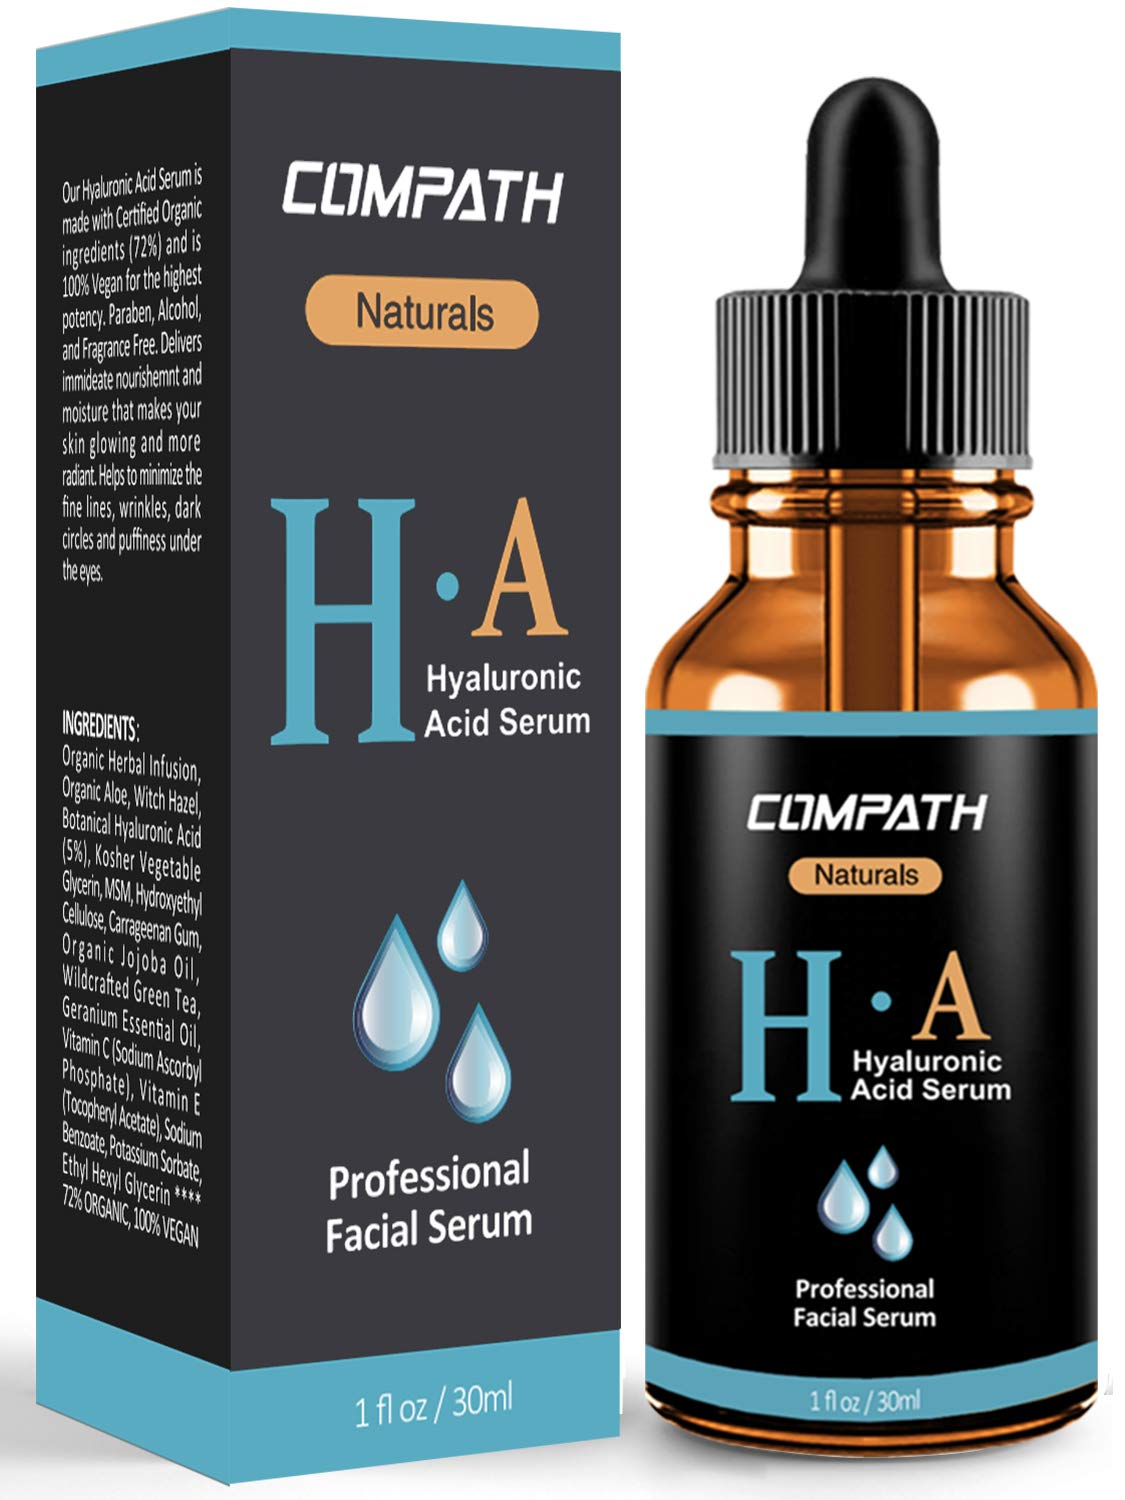 Hyaluronic Acid Serum, COMPATH Anti-Aging & Moisturizing Hyaluronic Acid Serum with Natural Vitamin C, Vitamin E & Botanical Hyaluronic Acid for Dry, Dull Skin, Acne, Wrinkles and Spots - 1 fl oz